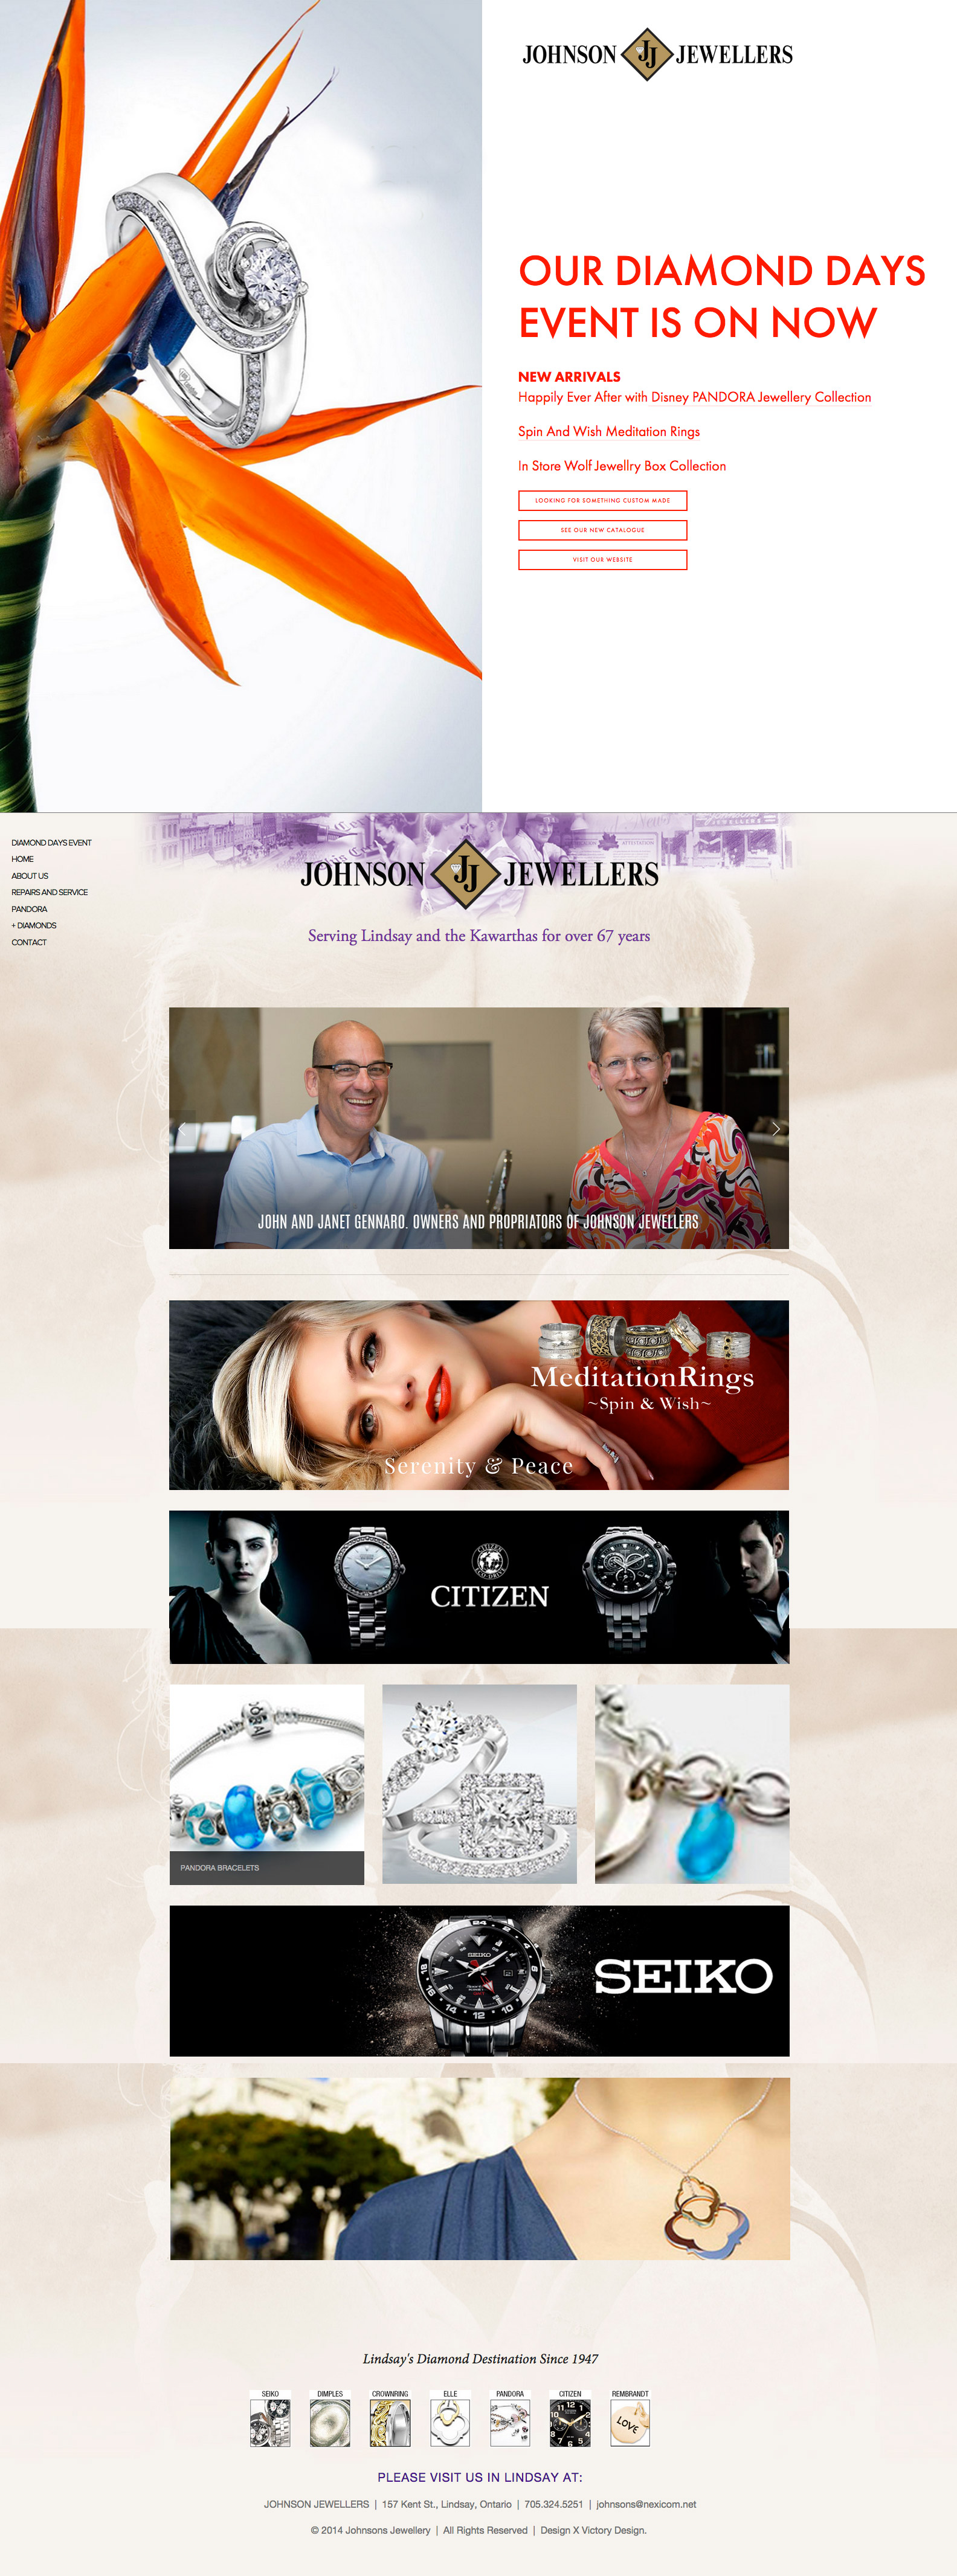 JOHNSON-JEWELLERS-WEBSITE